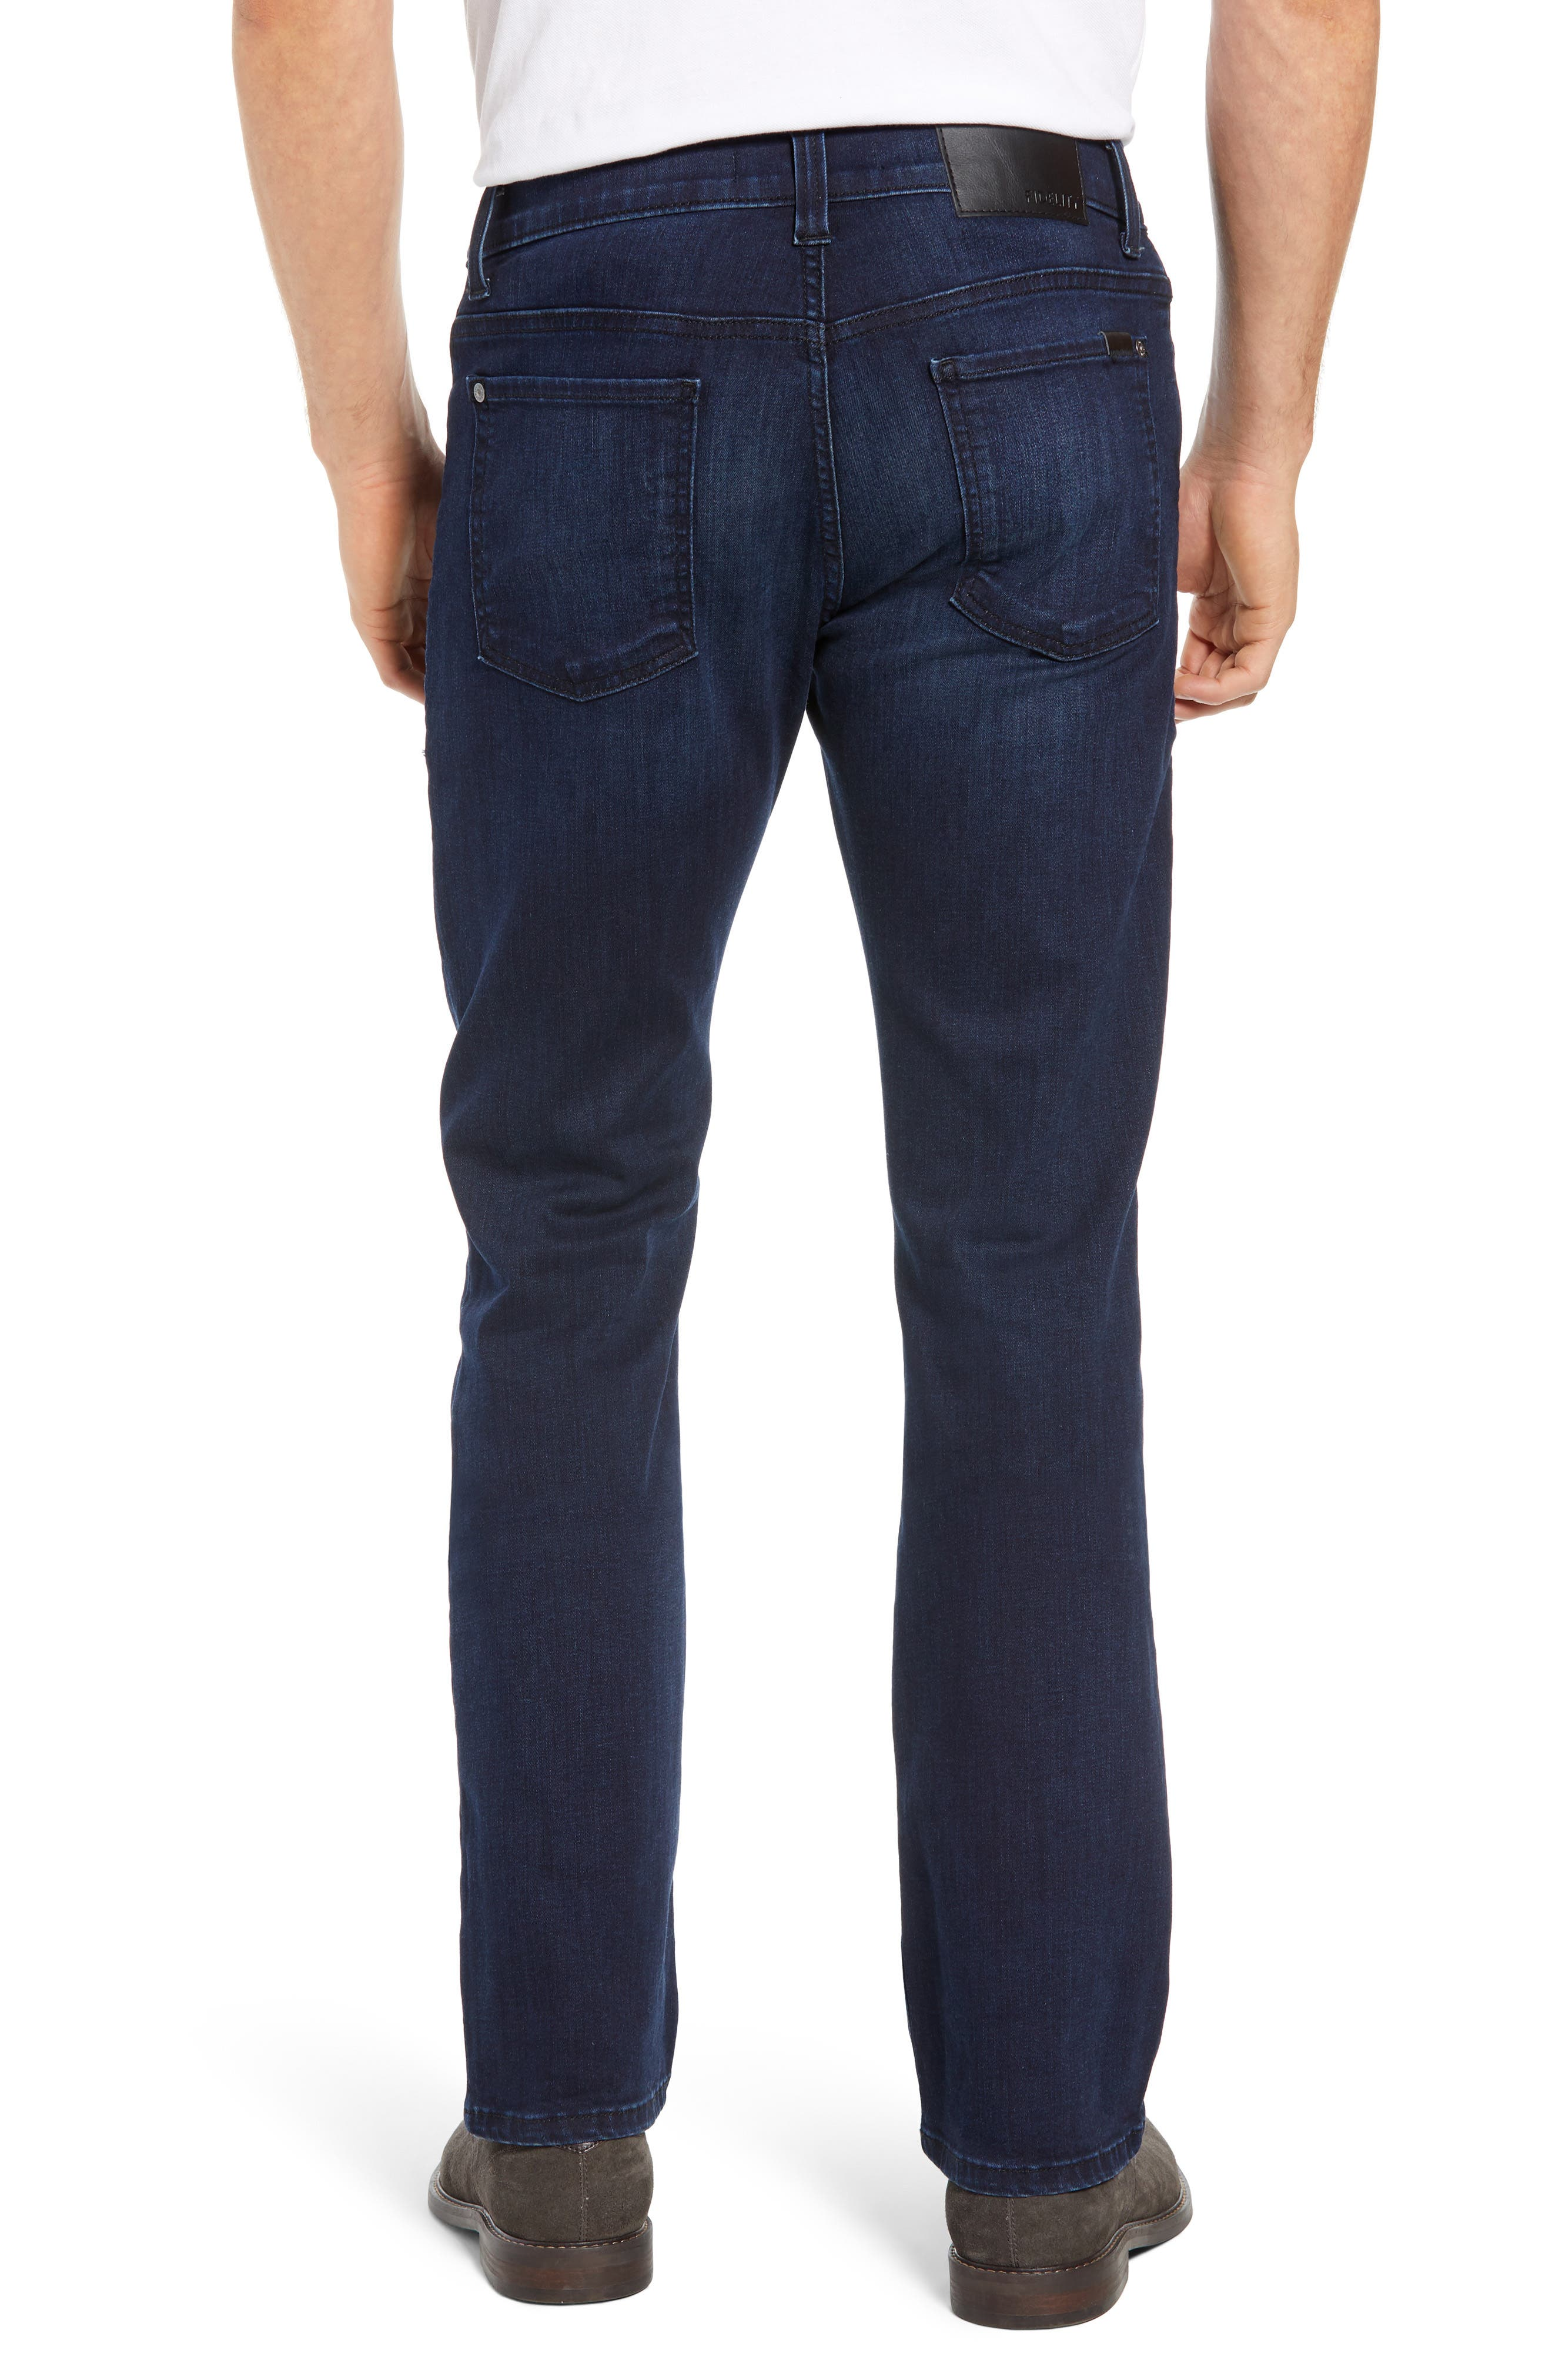 50-11 Relaxed Fit Jeans,                             Alternate thumbnail 2, color,                             HENDRIX